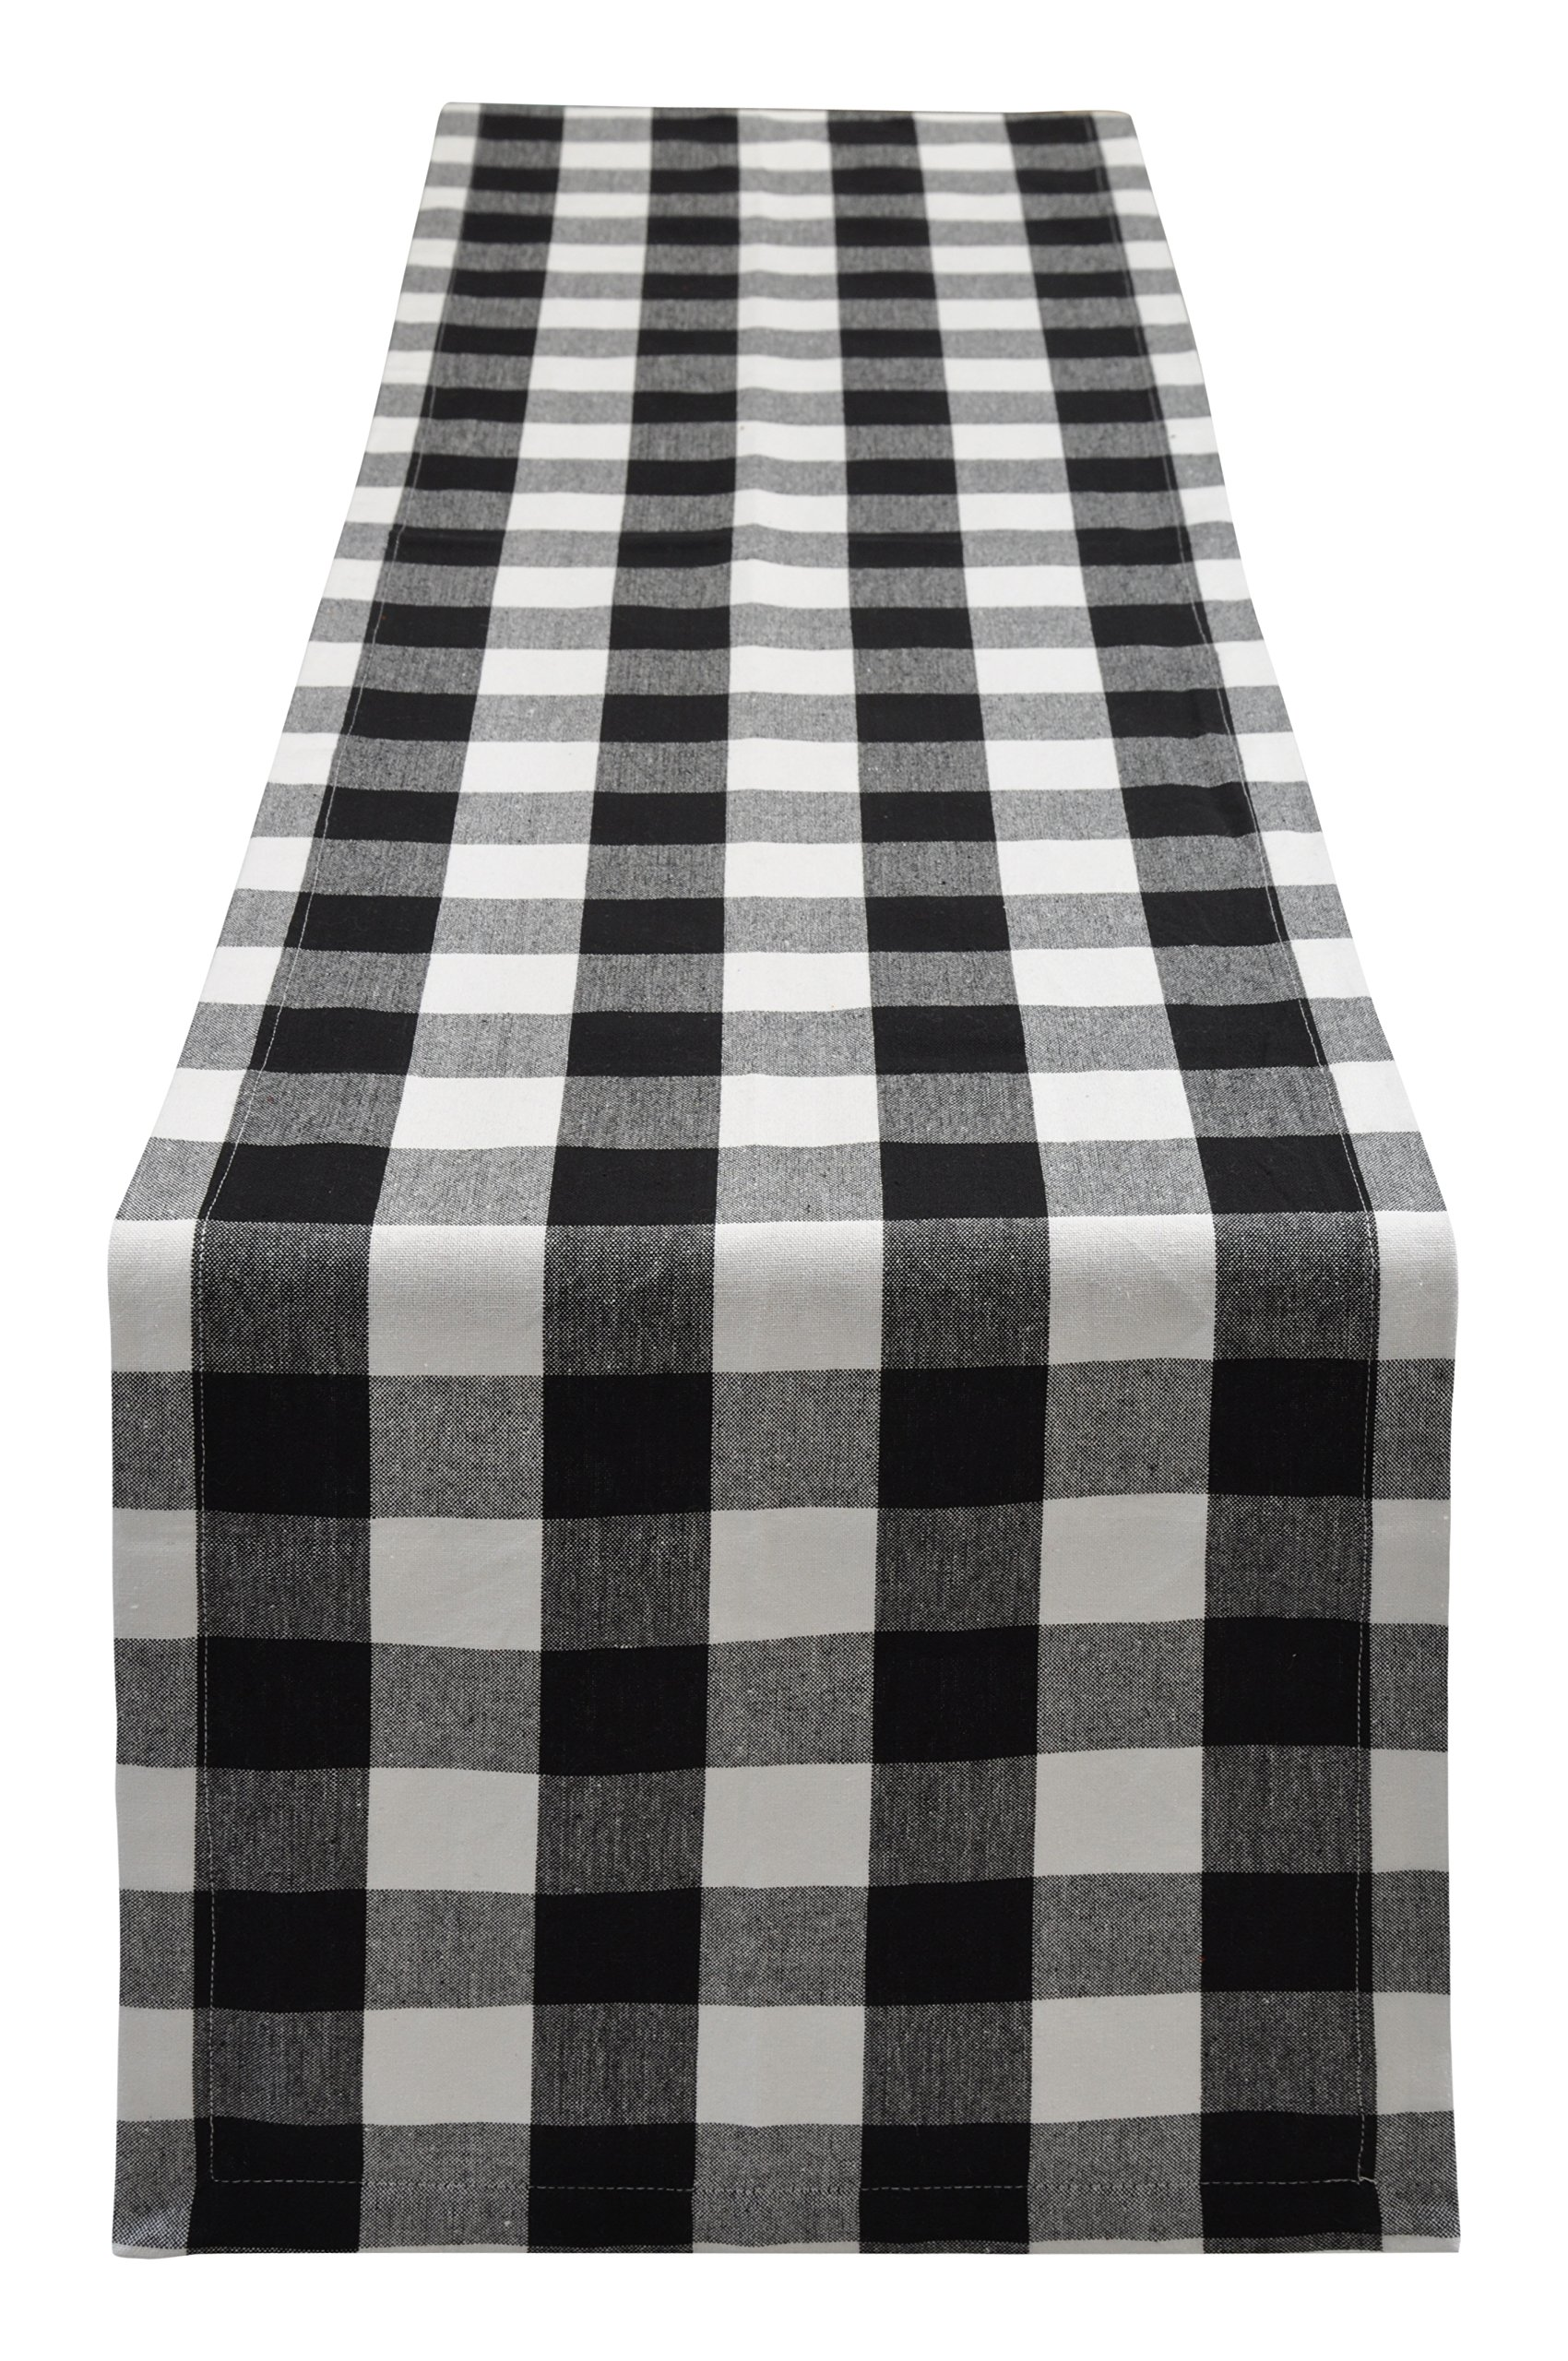 Yourtablecloth Buffalo Plaid Checkered Table Runner Trendy & Modern Plaid Design 100% Cotton Tablerunner Elegant Décor for Indoor&Outdoor Events 14 x 108 Black and White by Yourtablecloth